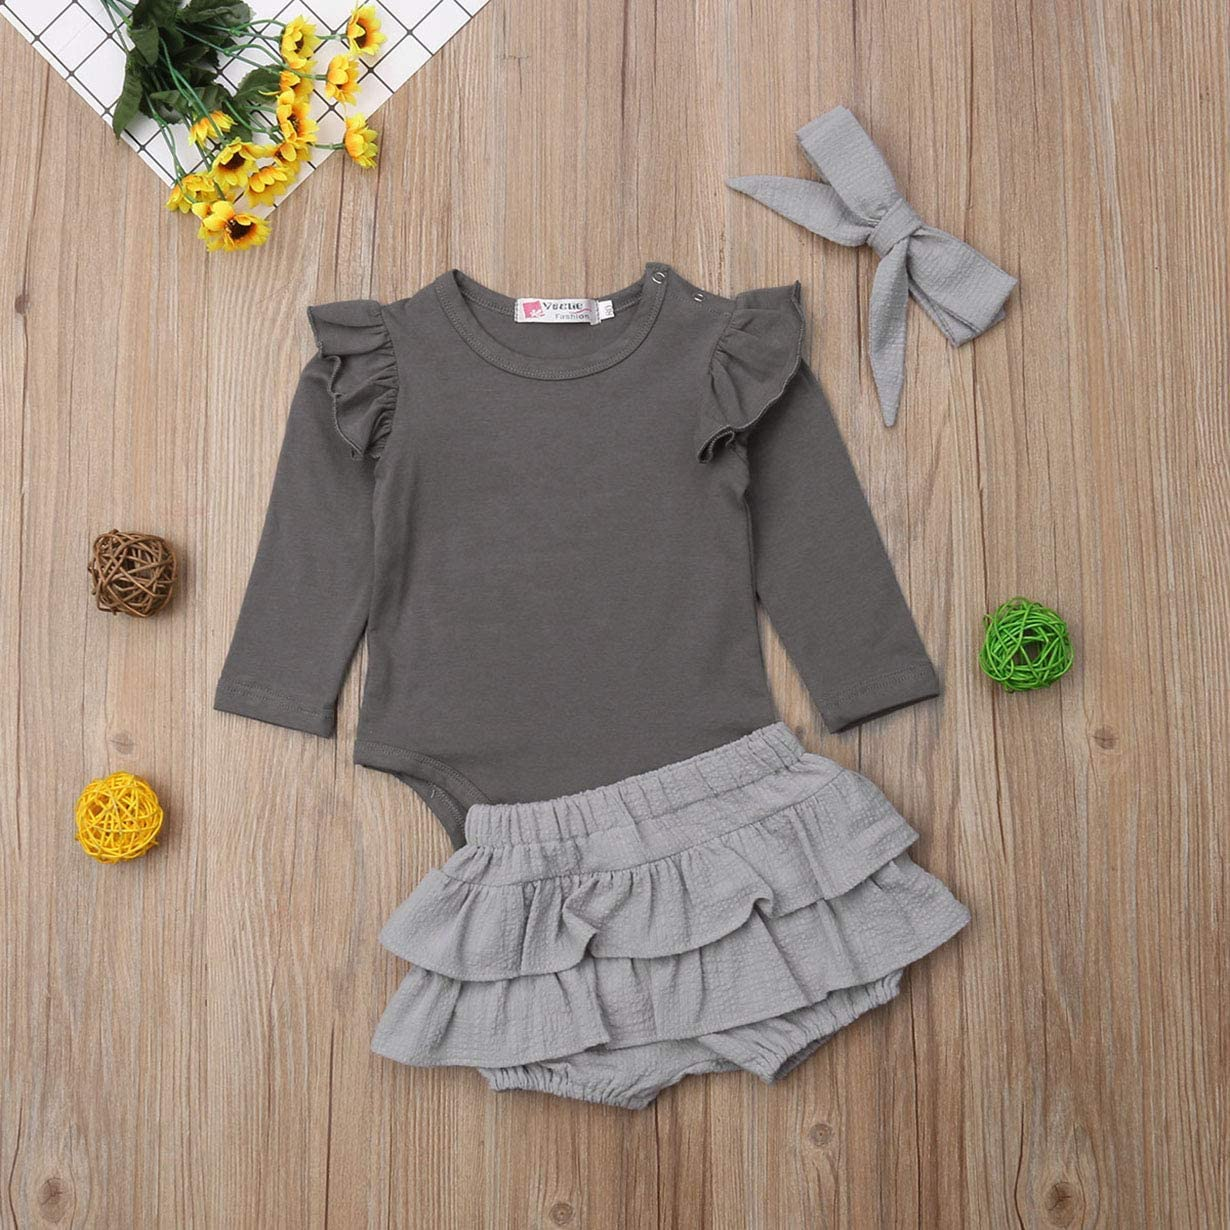 Newborn Baby Girl Long Sleeve Outfit Set Solid Color Romper Ruffle Layers Shorts Bowknot Headband 3Pcs Clothing Sets